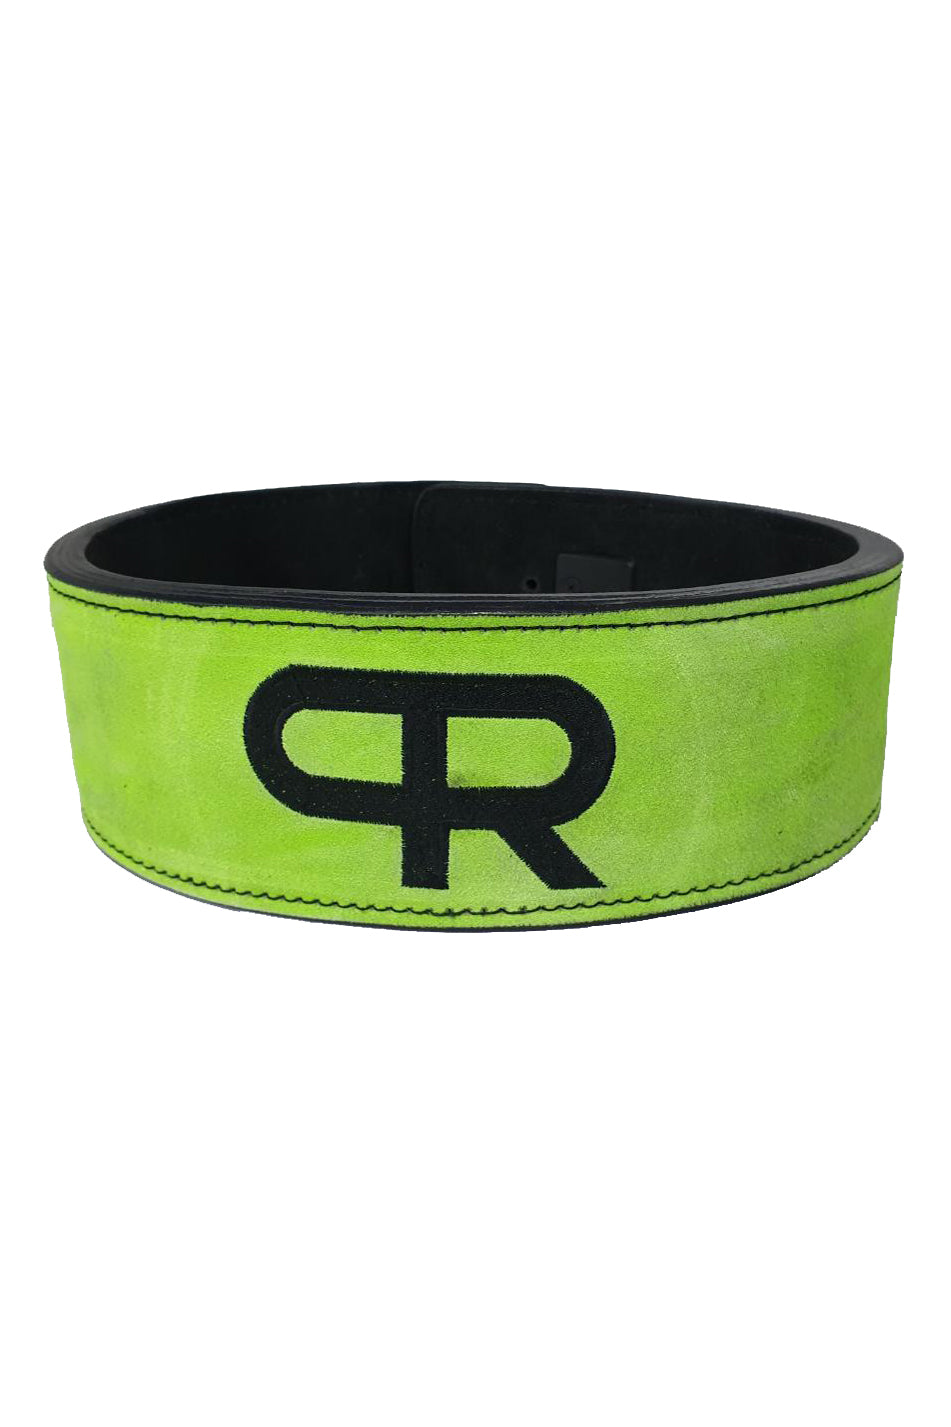 PR Powerlifting 13mm Belt w/ Lever Buckle - Black/Neon